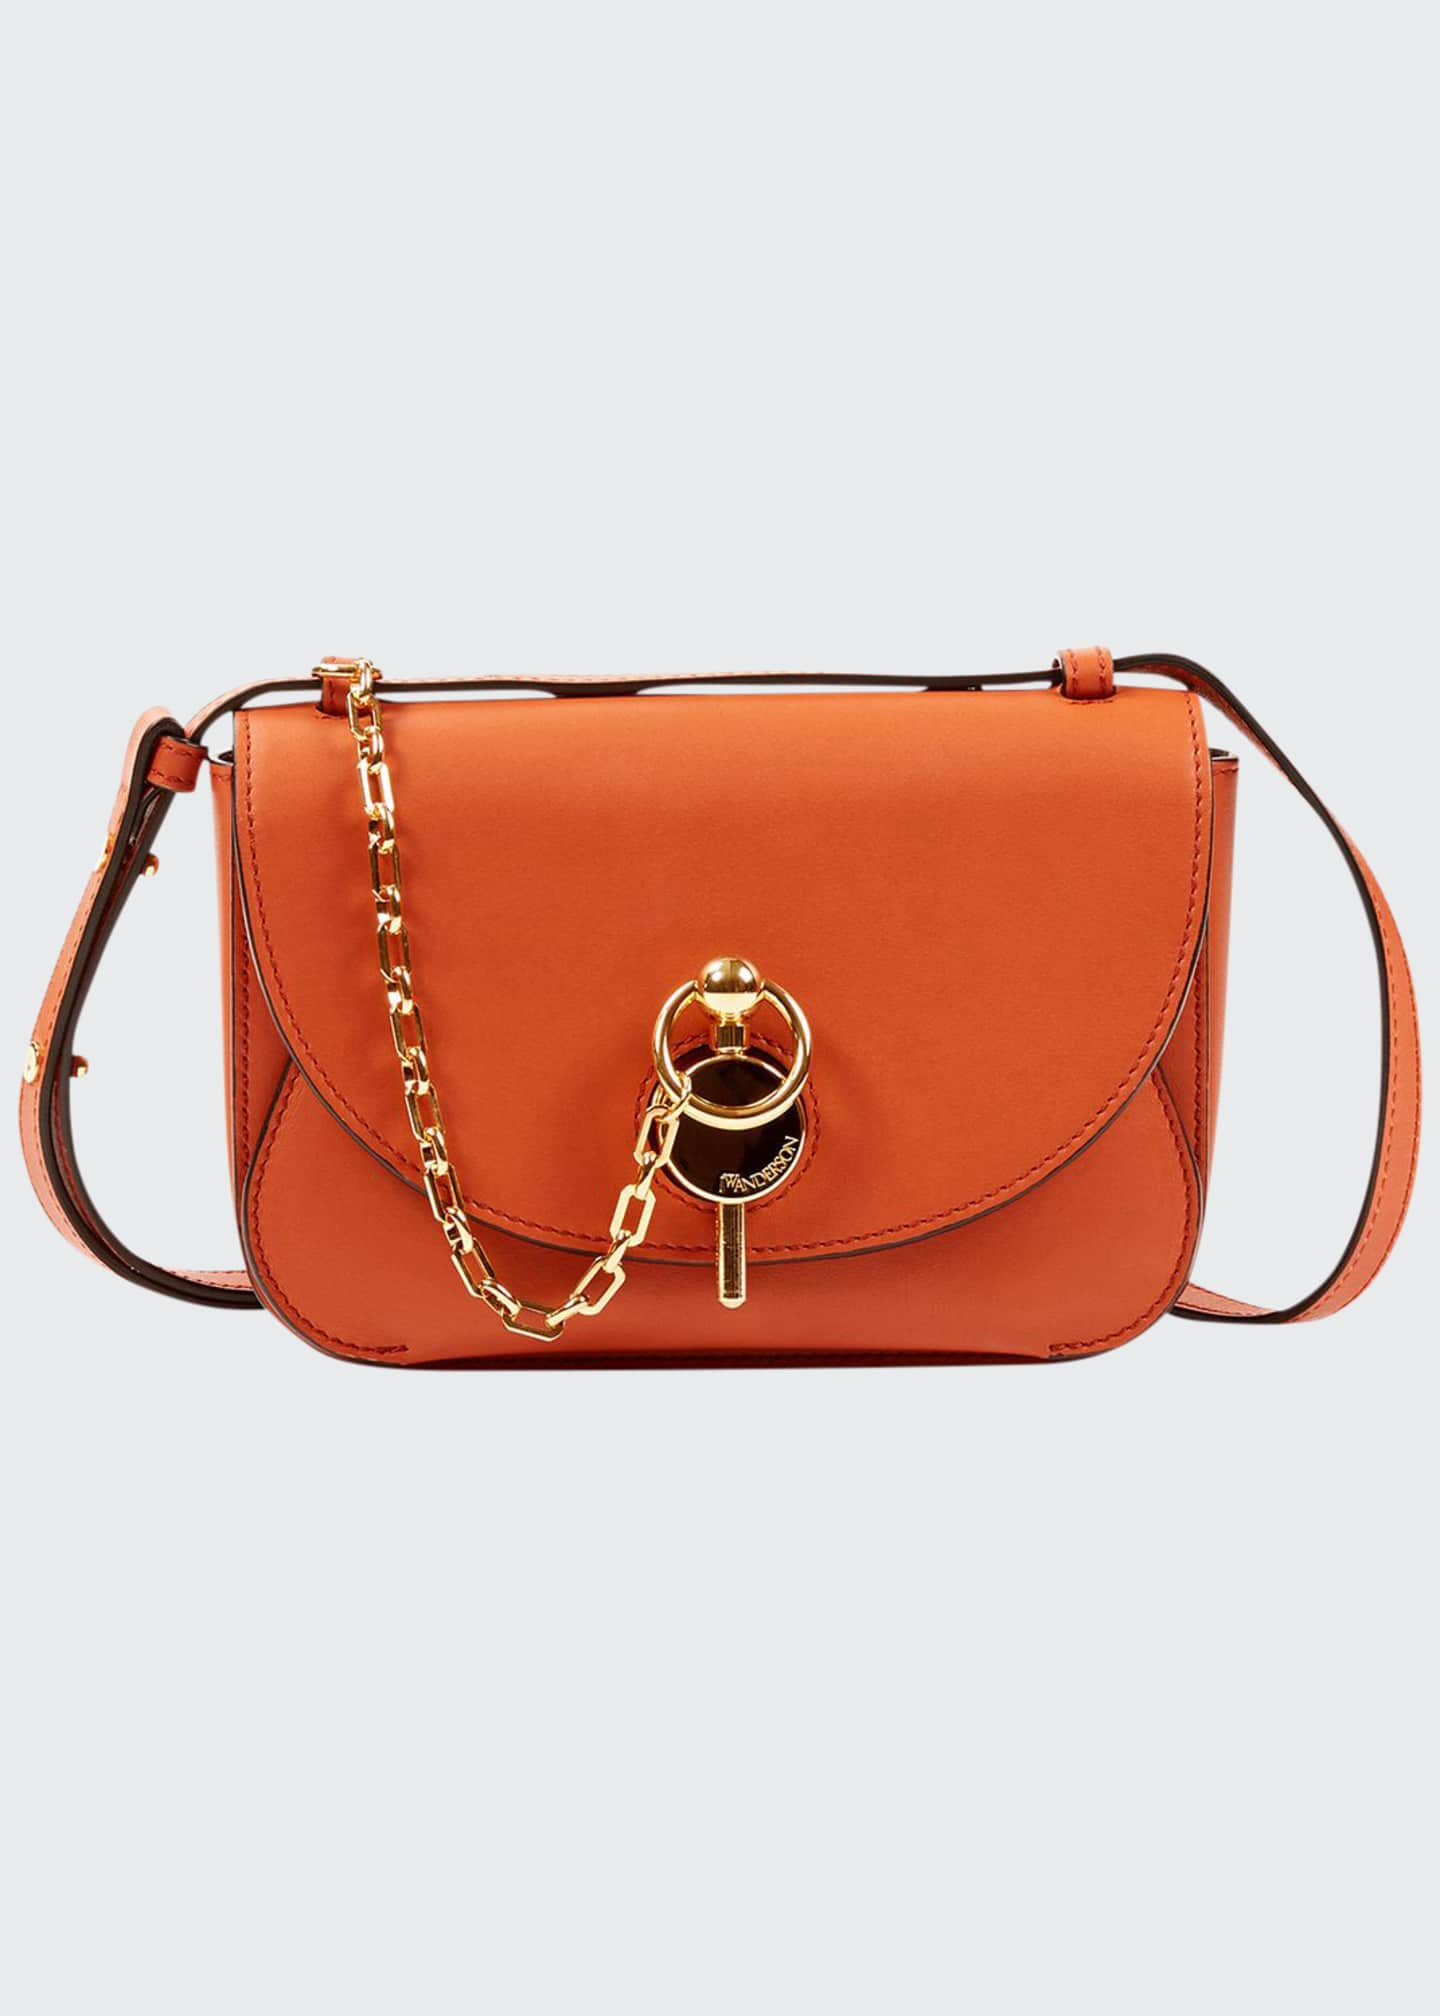 JW Anderson Midi Keyts Smooth Crossbody Bag